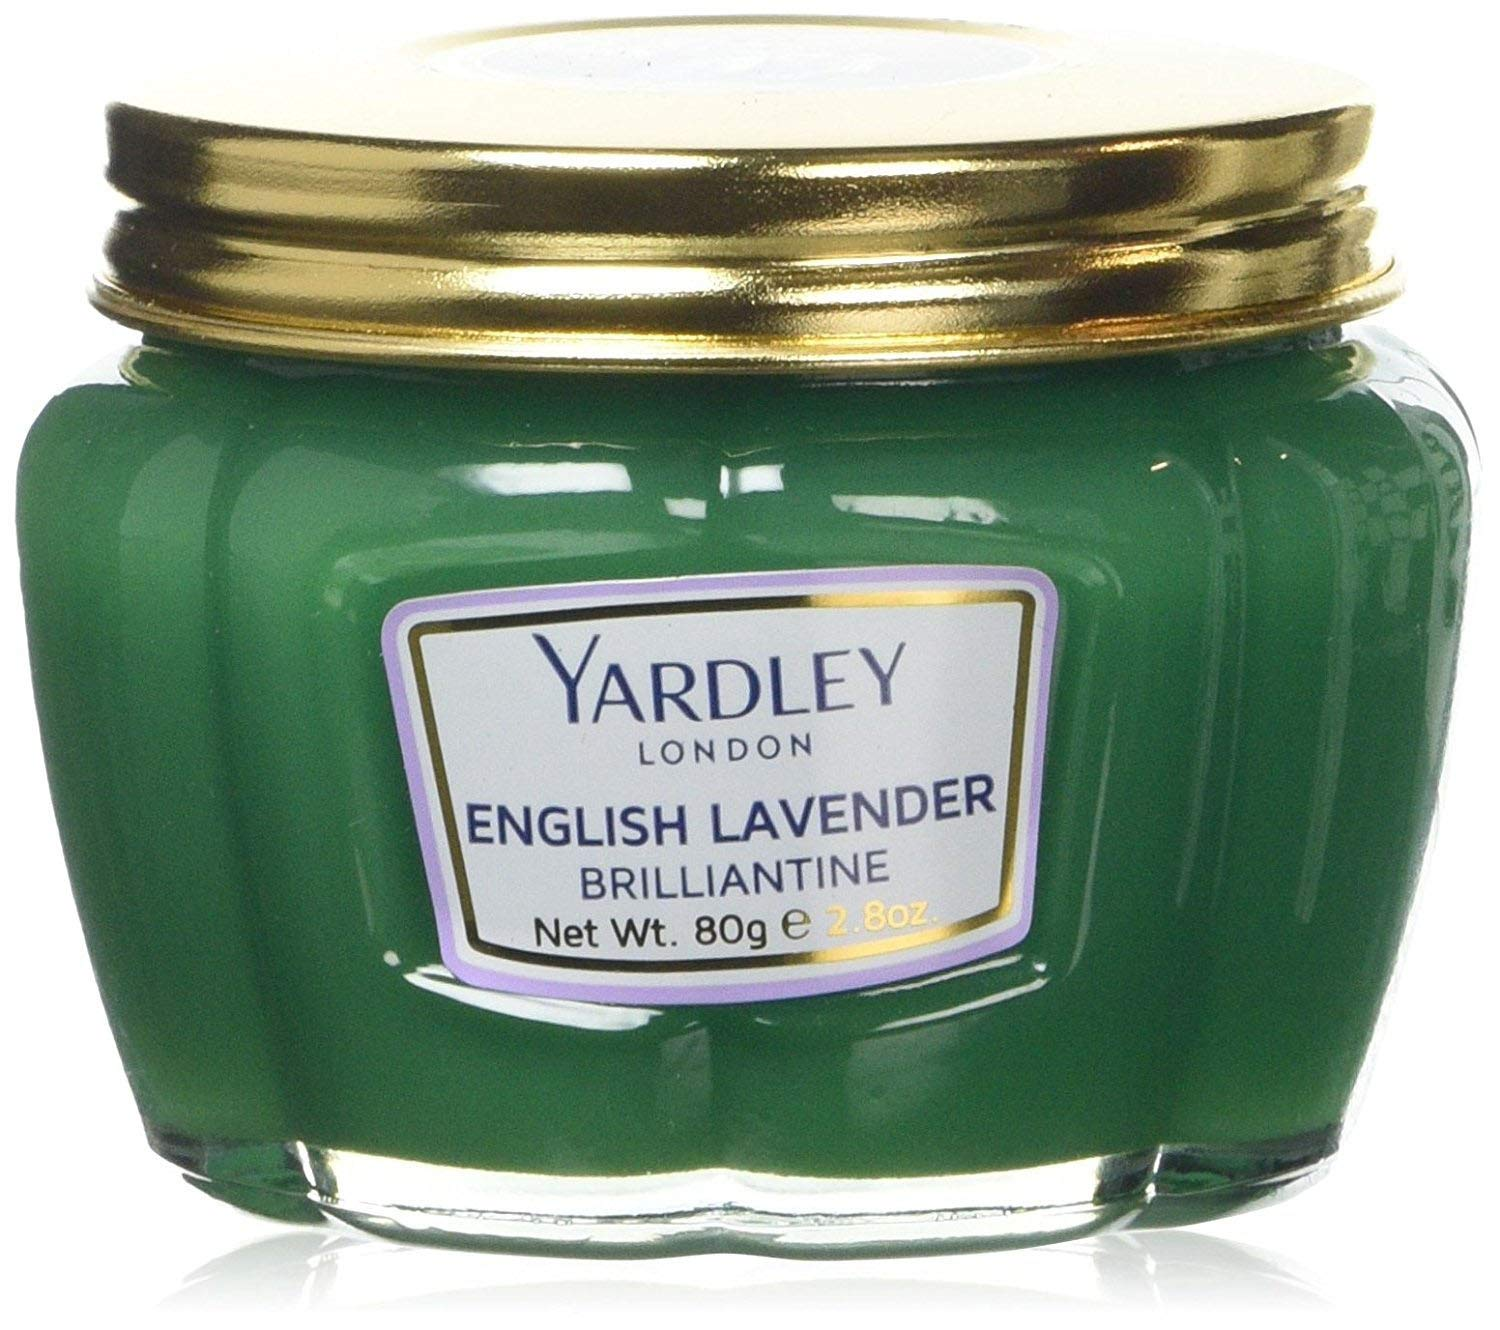 Yardley of London English Lavender Brilliantine for Women, 2.8 Ounce 215186